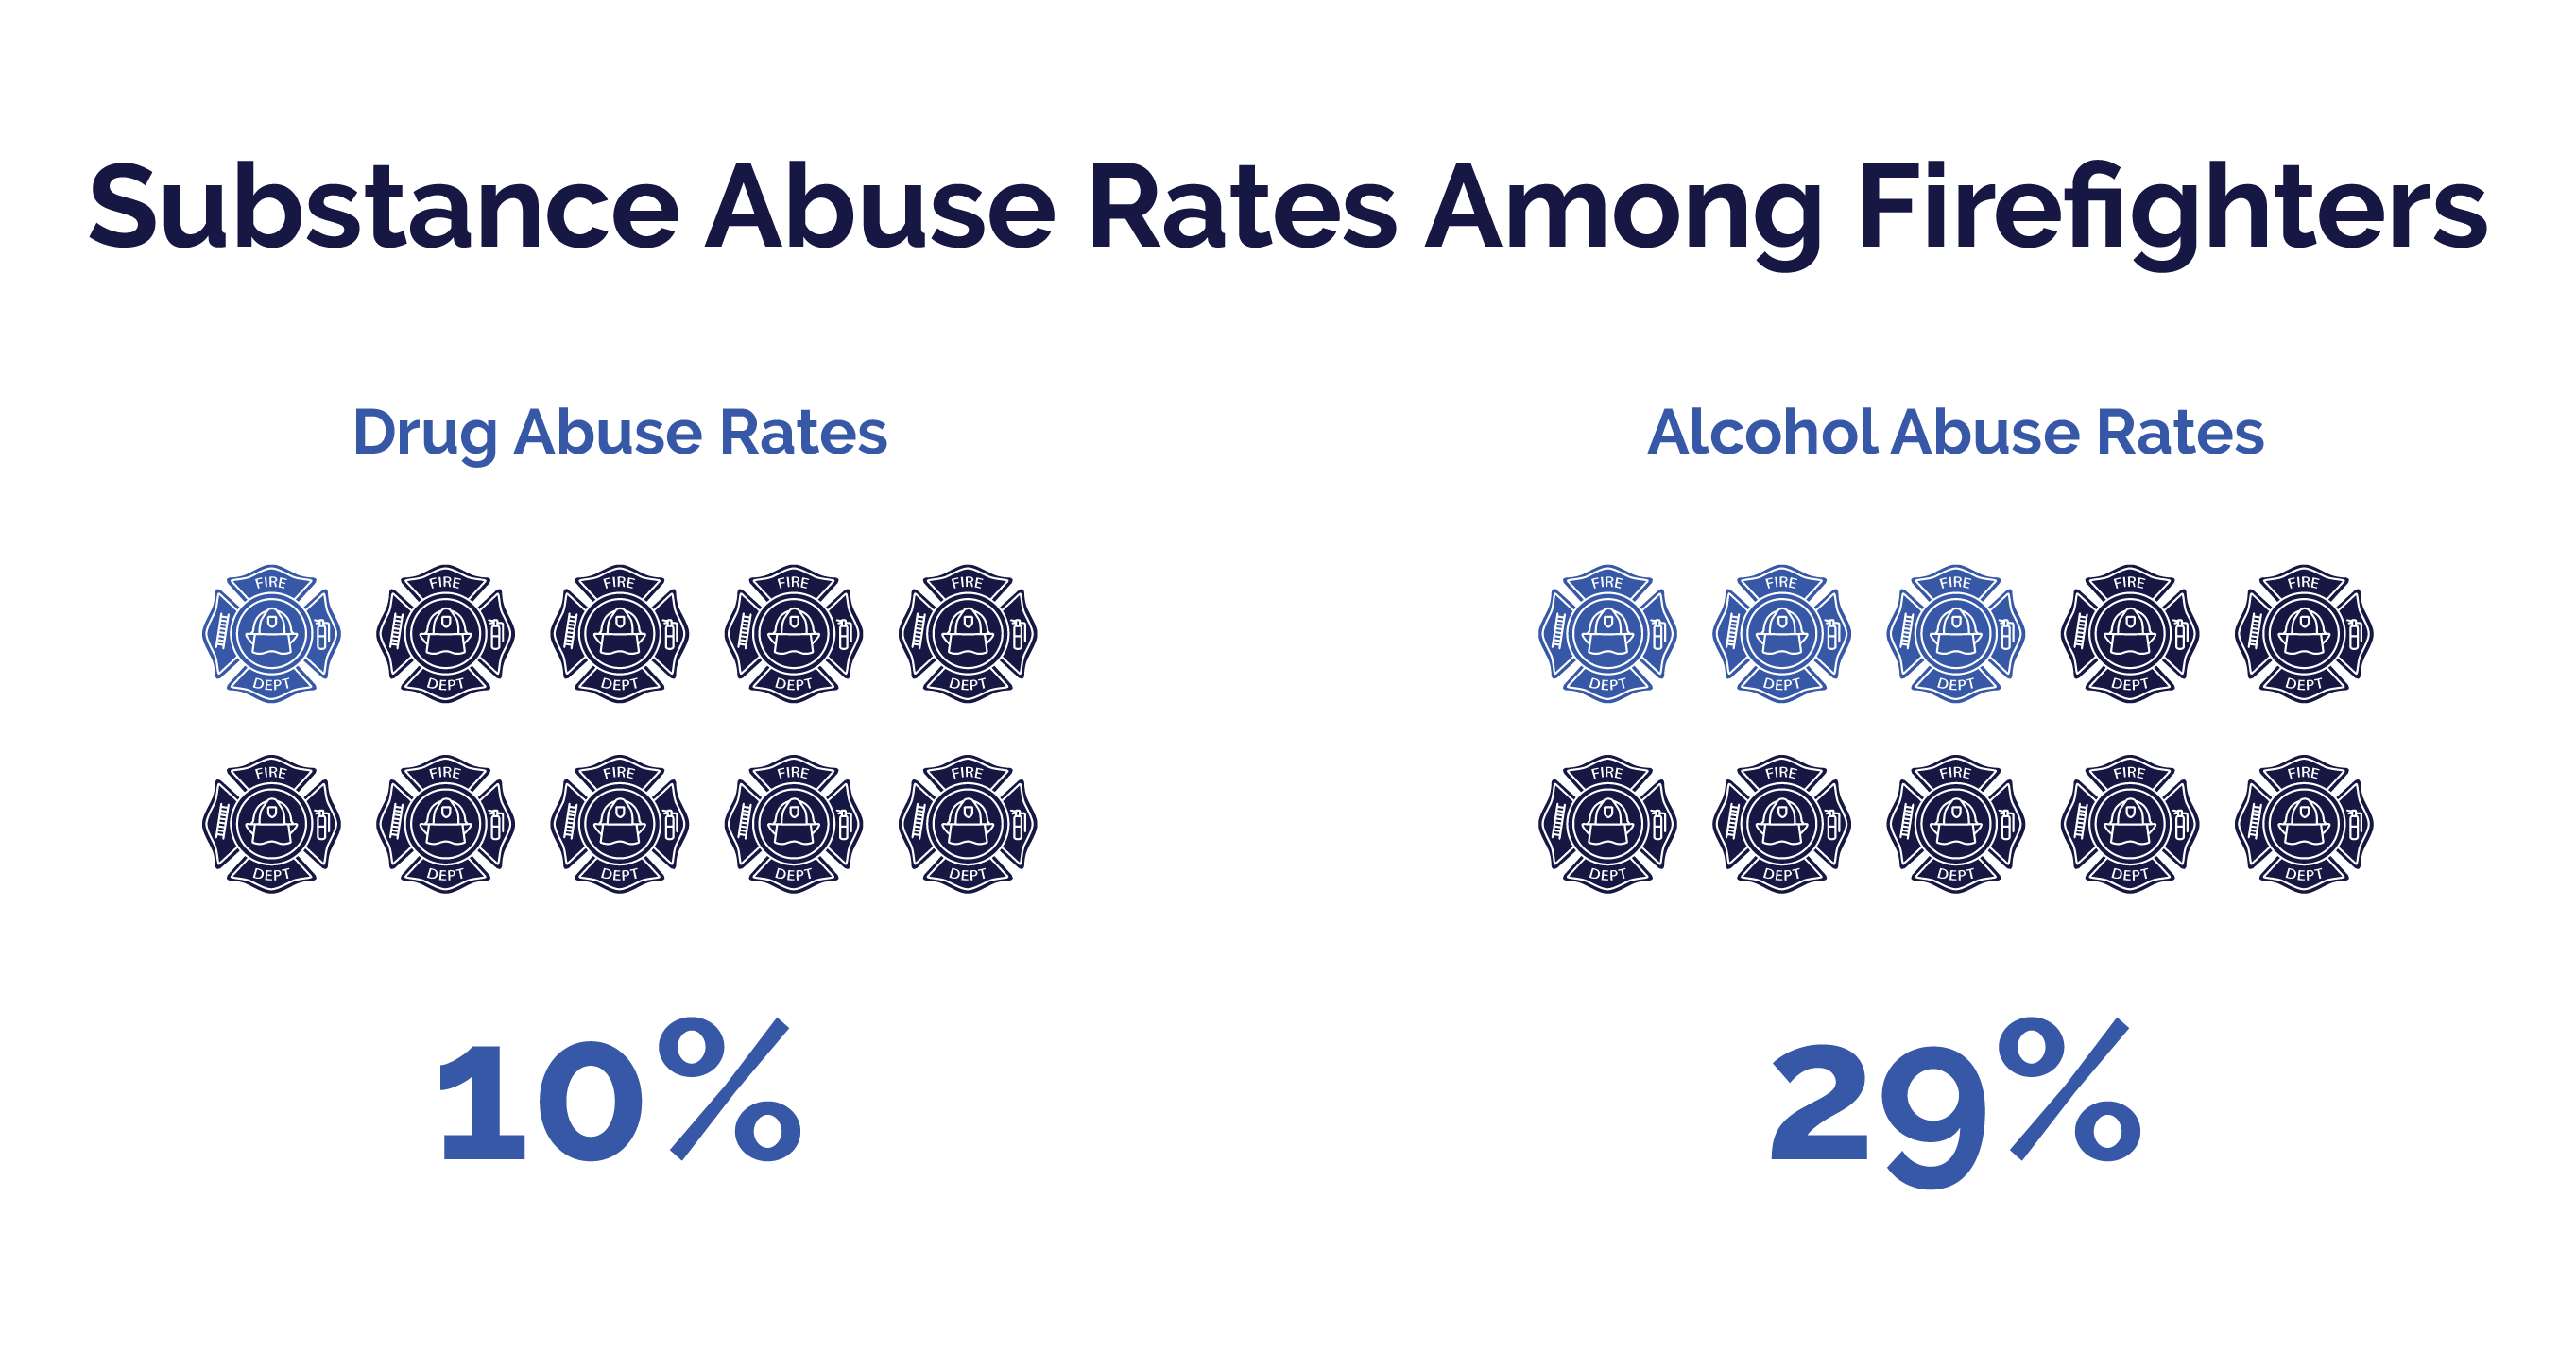 First Responders Guide - Substance Abuse Rates